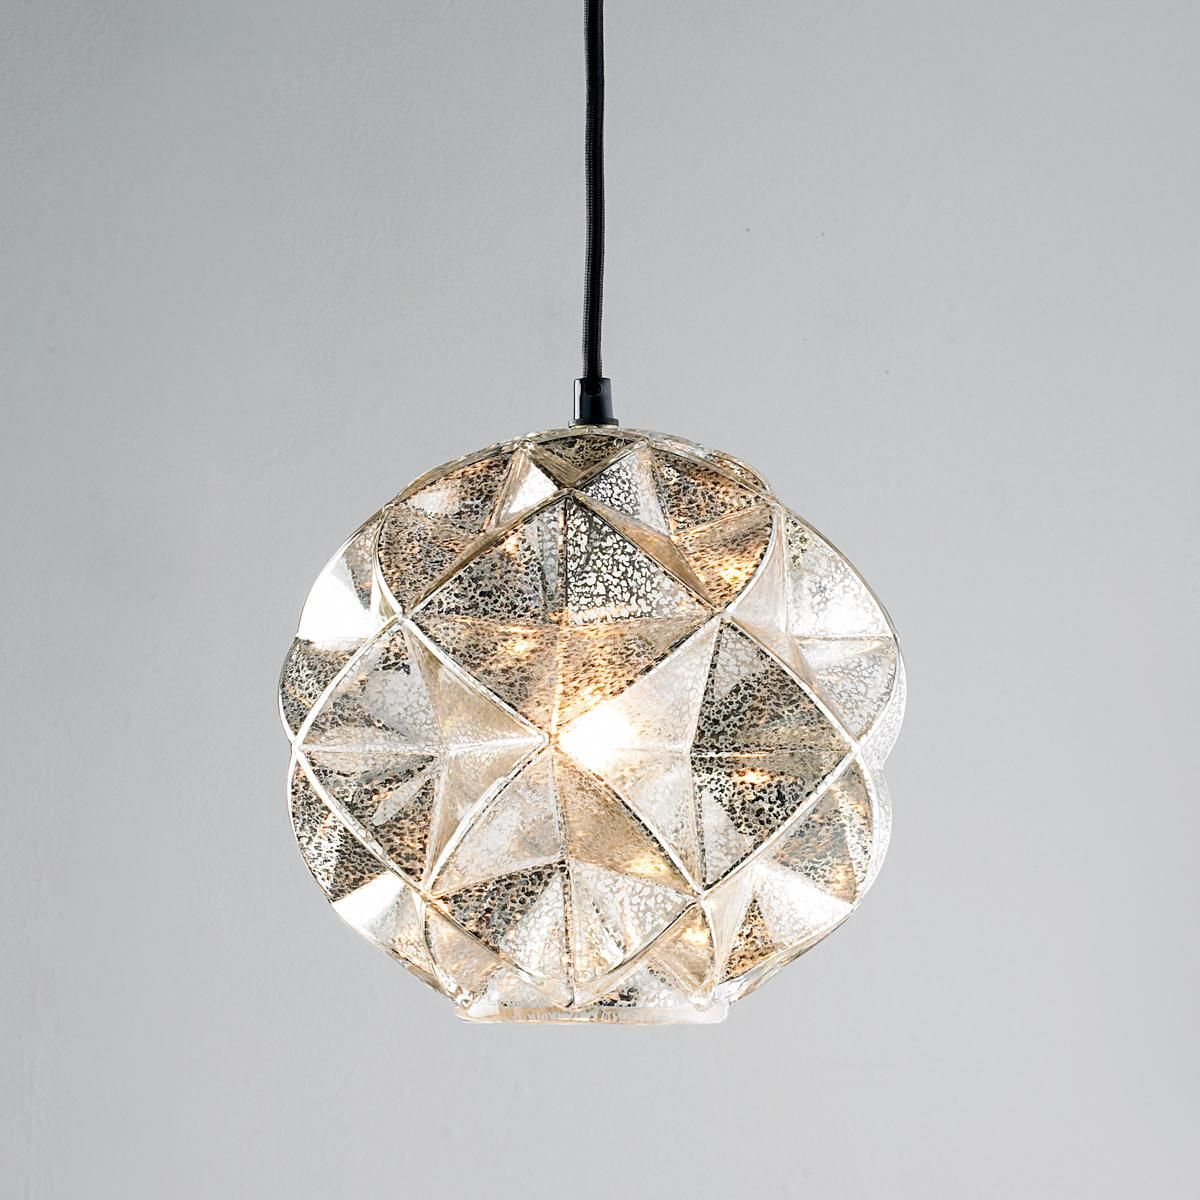 Mercury glass light fixtures - Mercury Glass Geodesic Dome Pendant Light 3 Of These Clustered Over The Dining Table Would